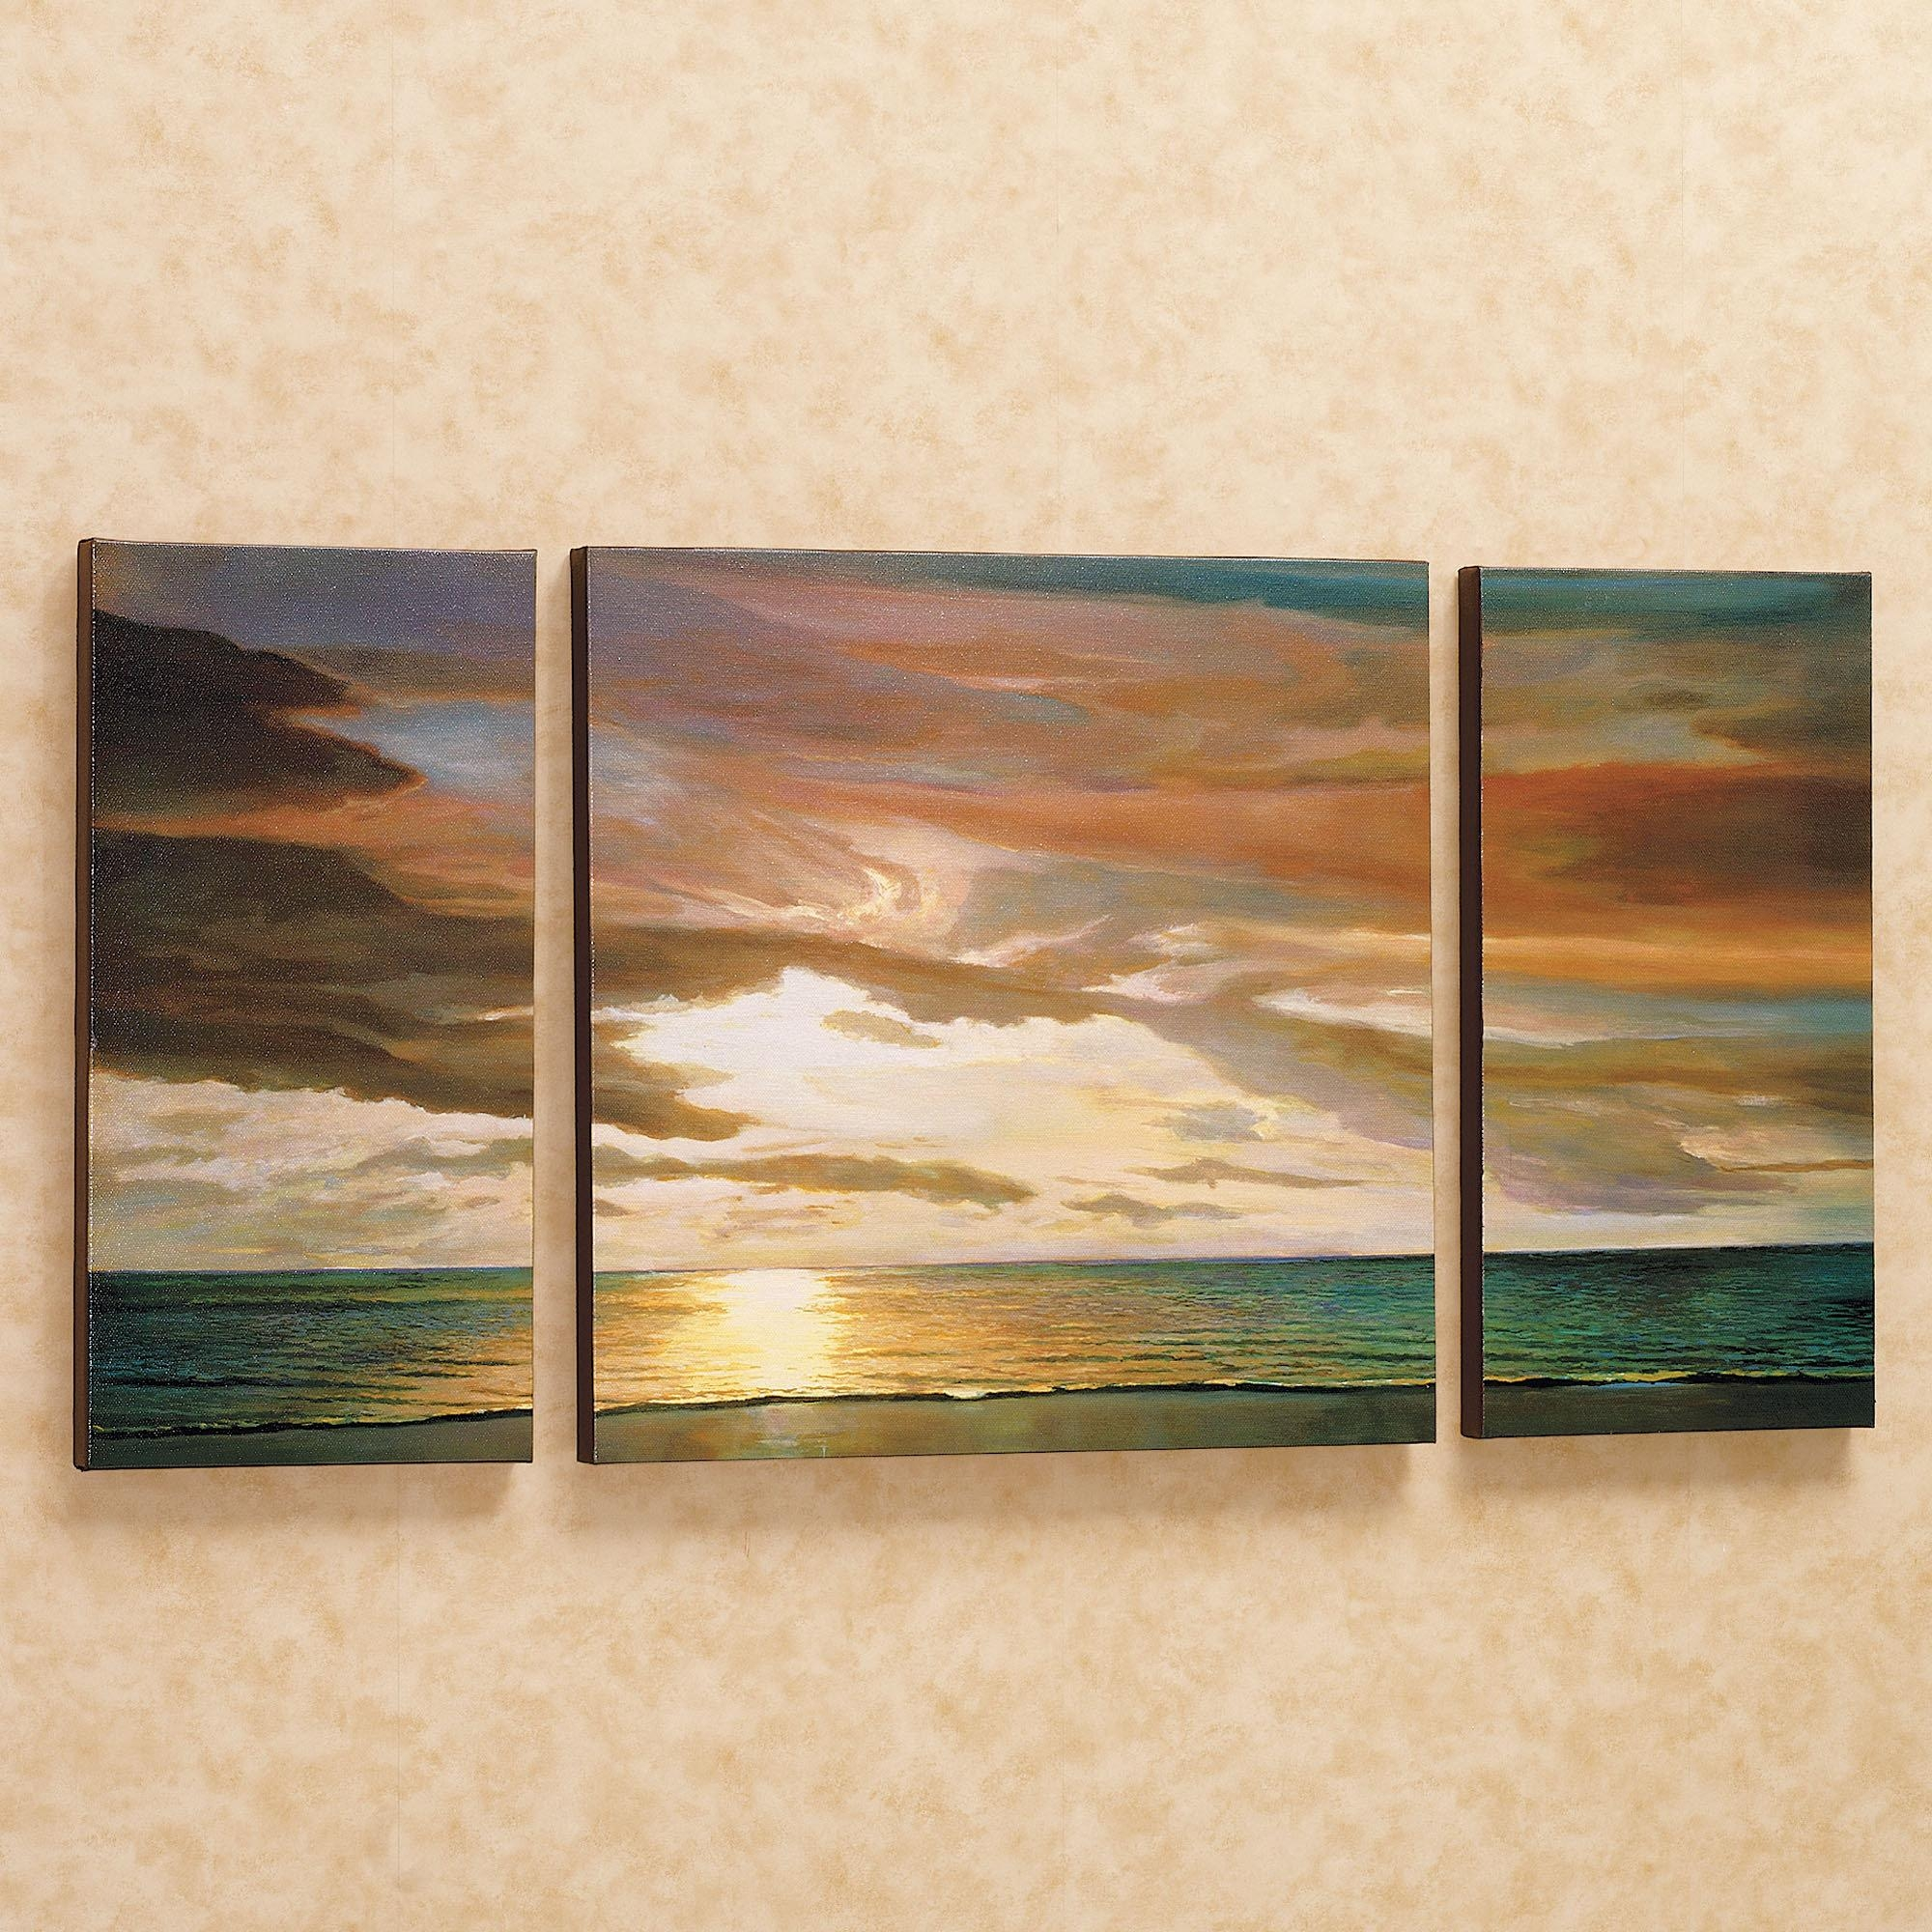 Wall Art Designs: Prints Canvas Triptych Wall Art Sale Large Metal For Triptych Art For Sale (Image 15 of 20)